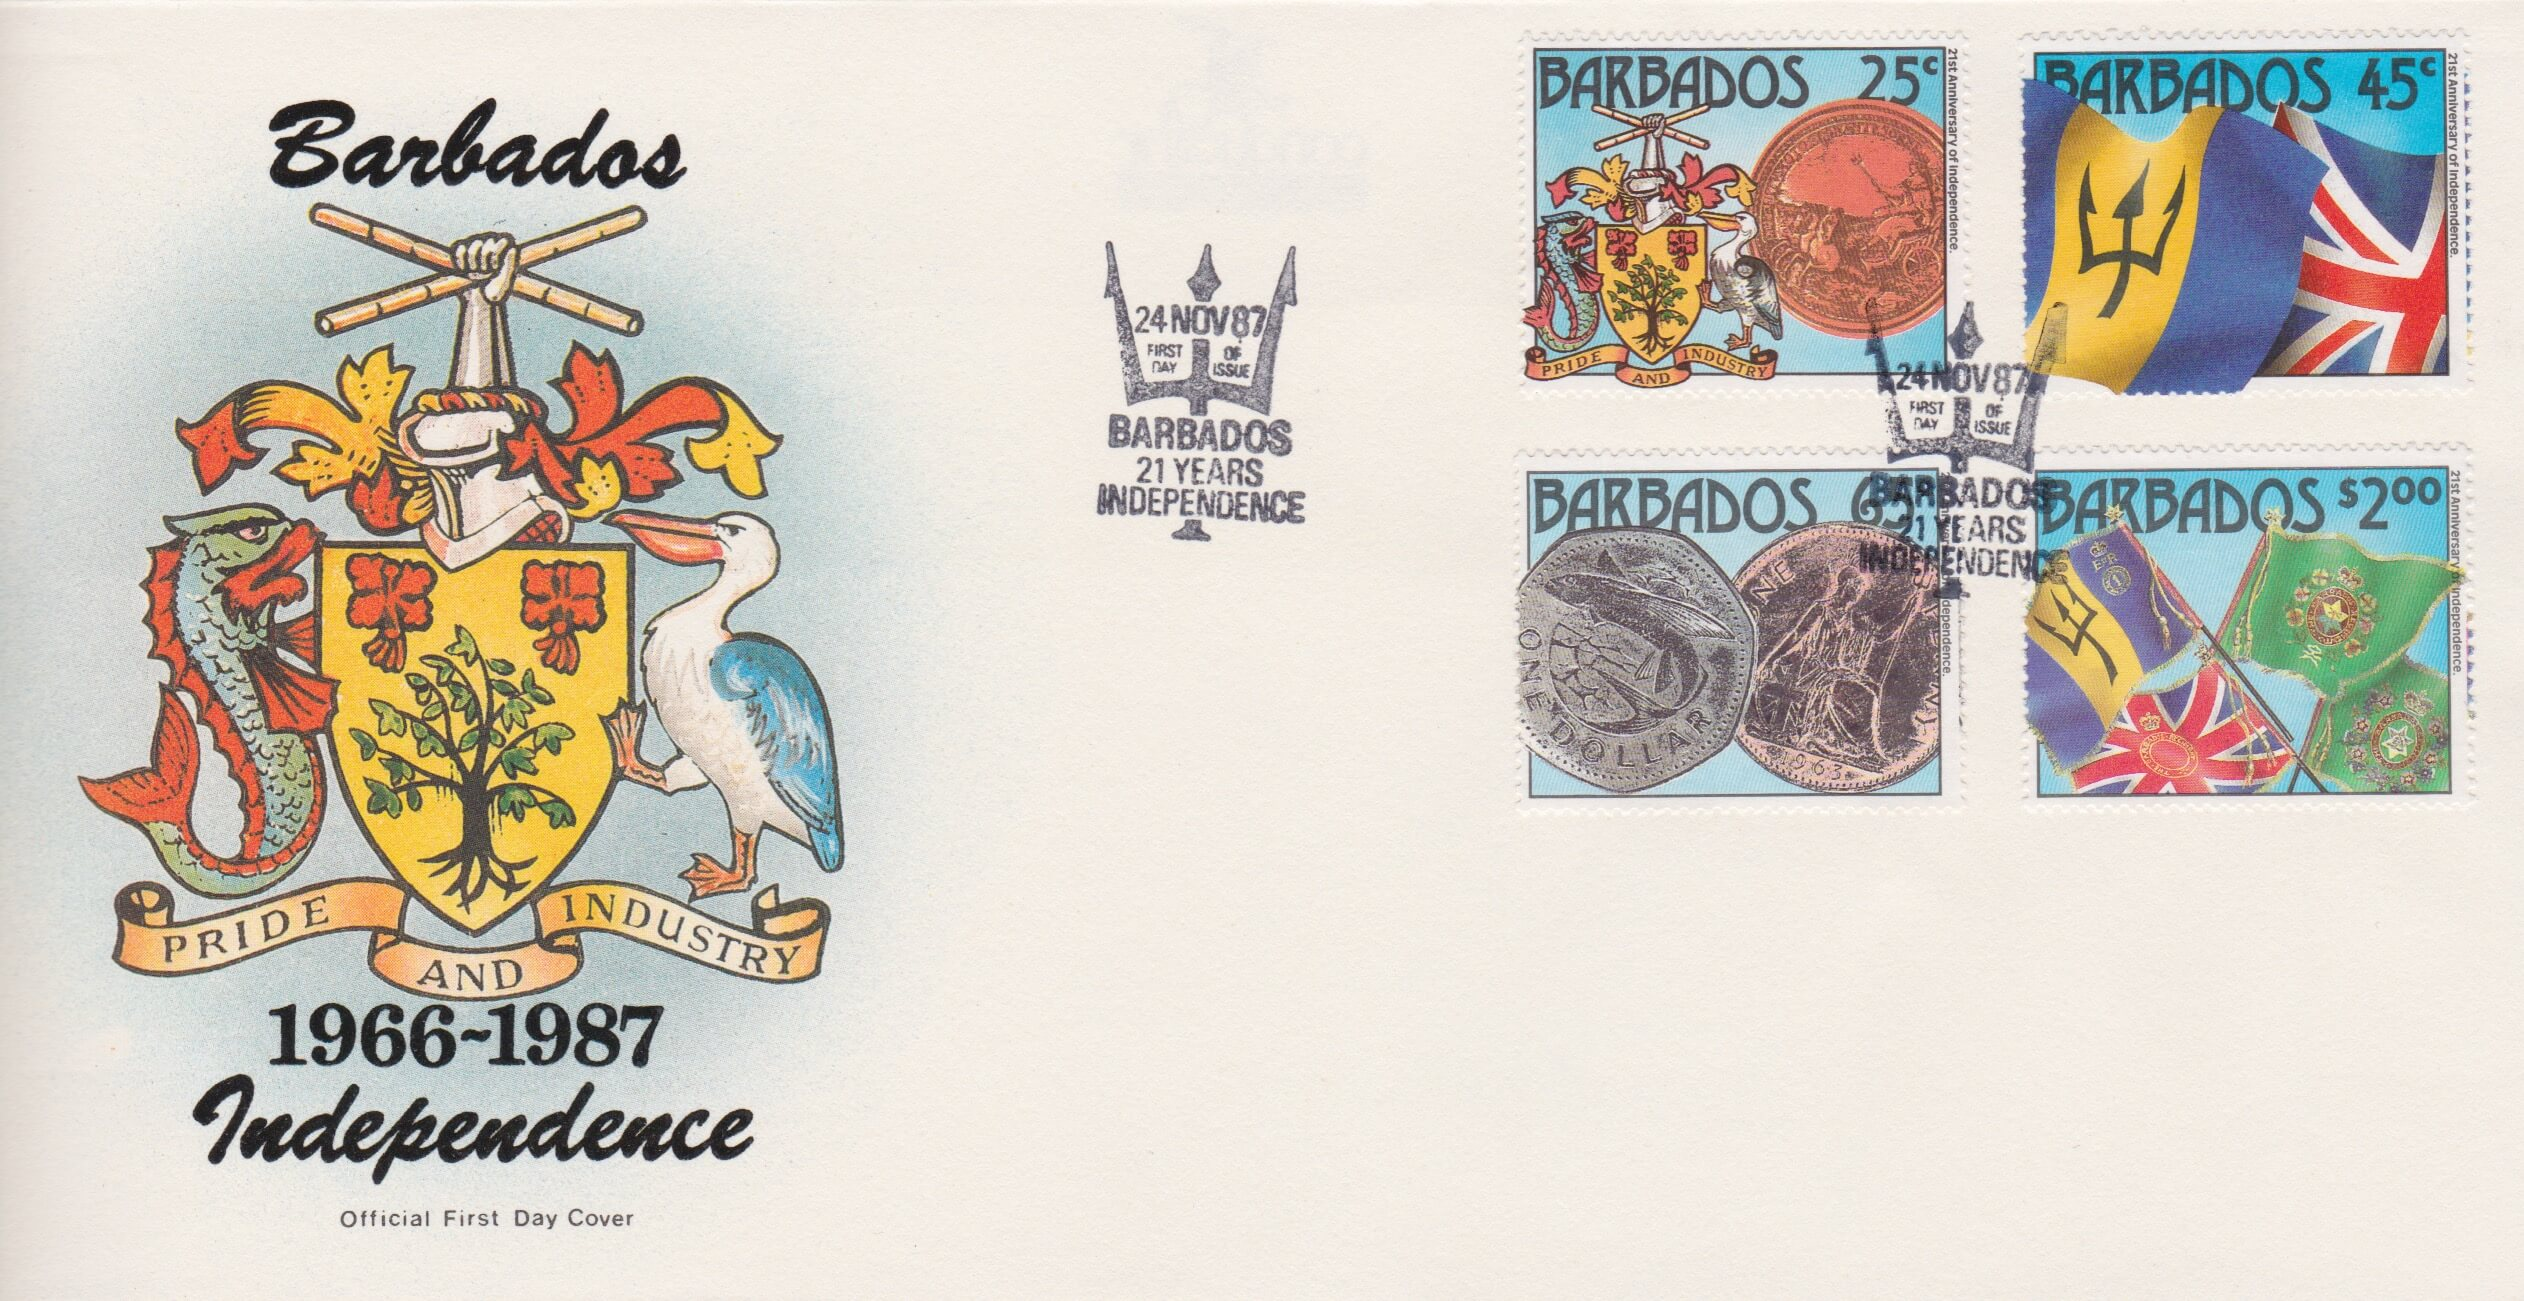 Barbados 21st Anniversary of Independence FDC